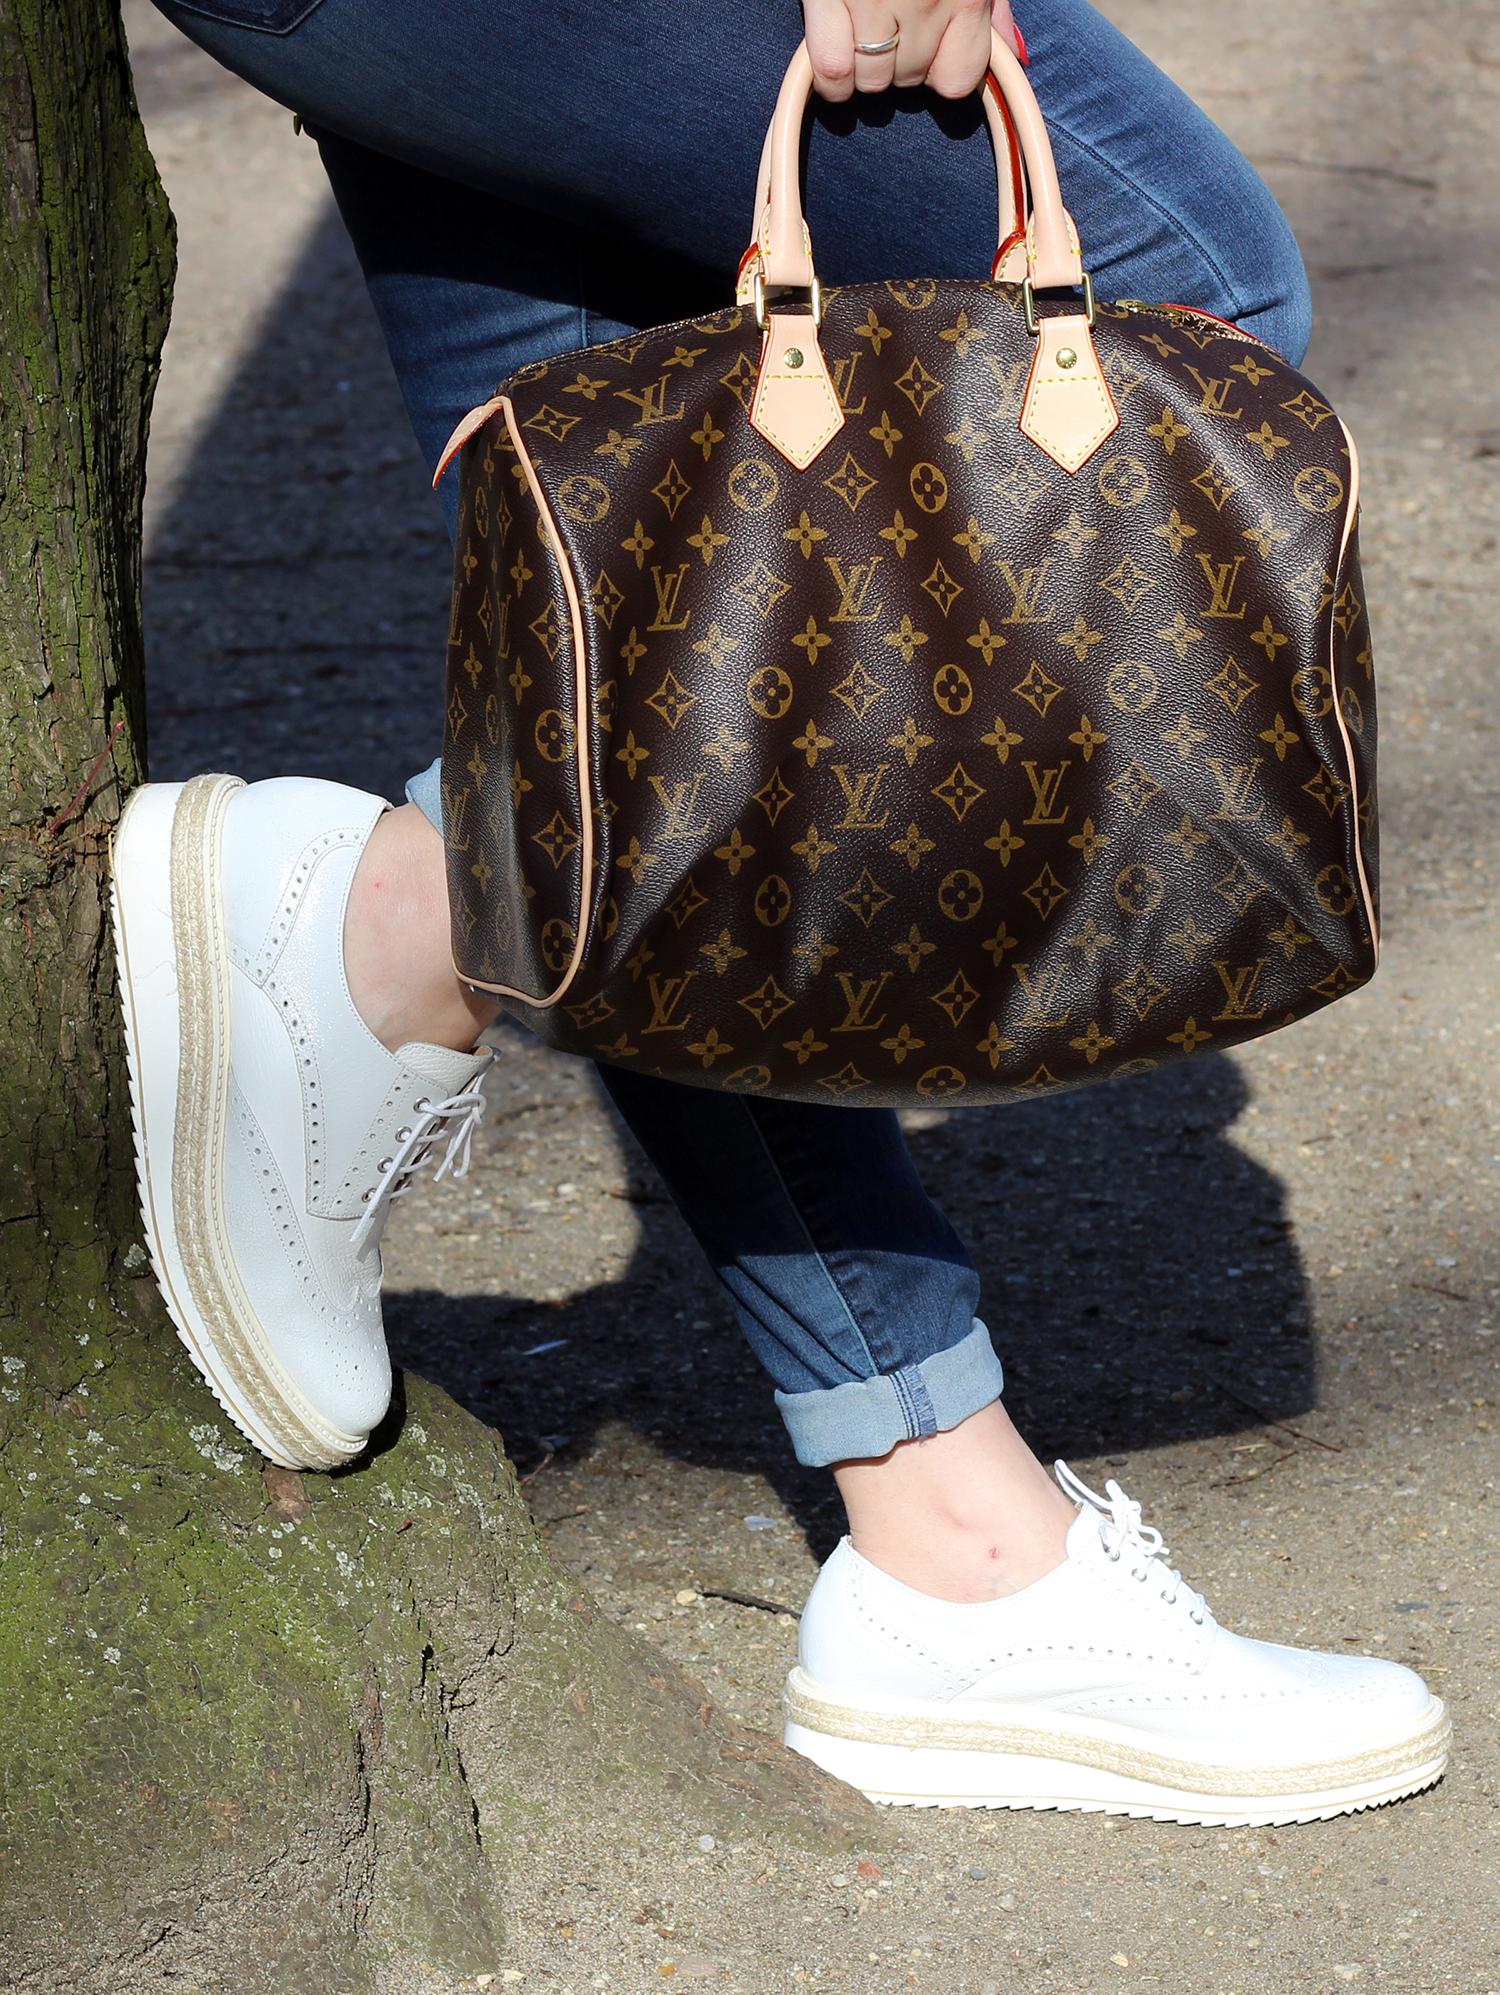 STRINGATE PEPEROSA SHOES SPEEDY BAG 35 LOUIS VUITTON